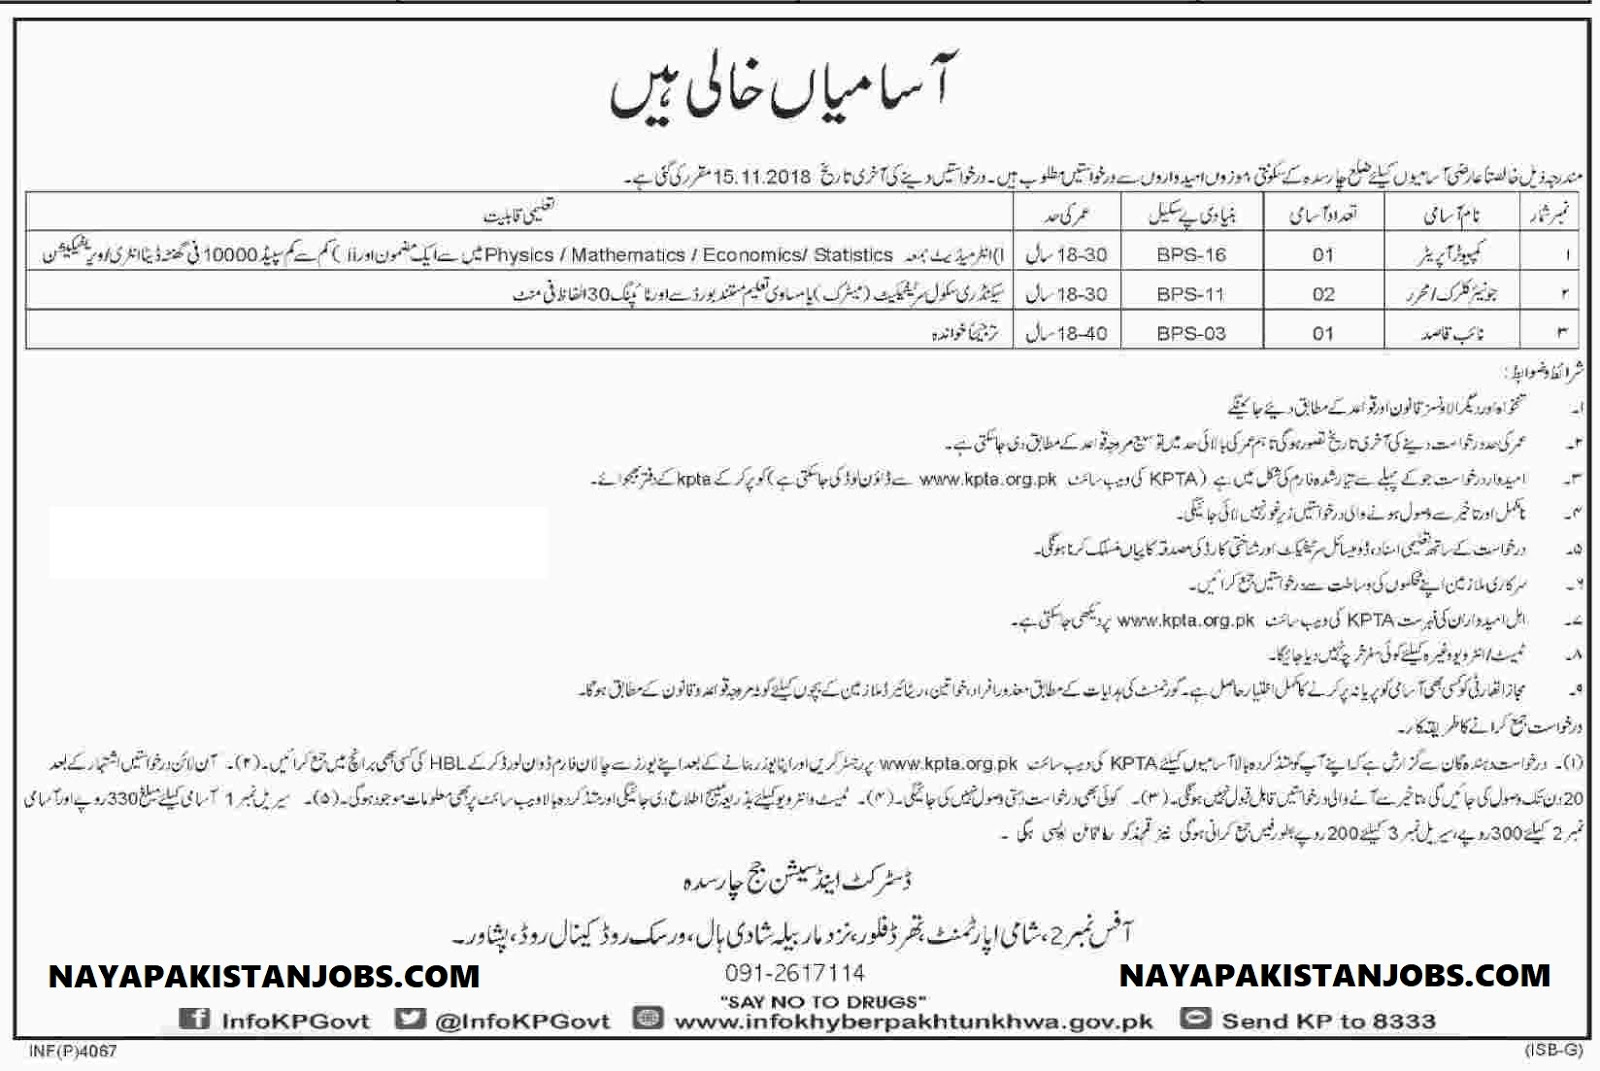 Latest Vacancies Announced in District And Session Judge Charsadda 24 October 2018 - Naya Pakistan